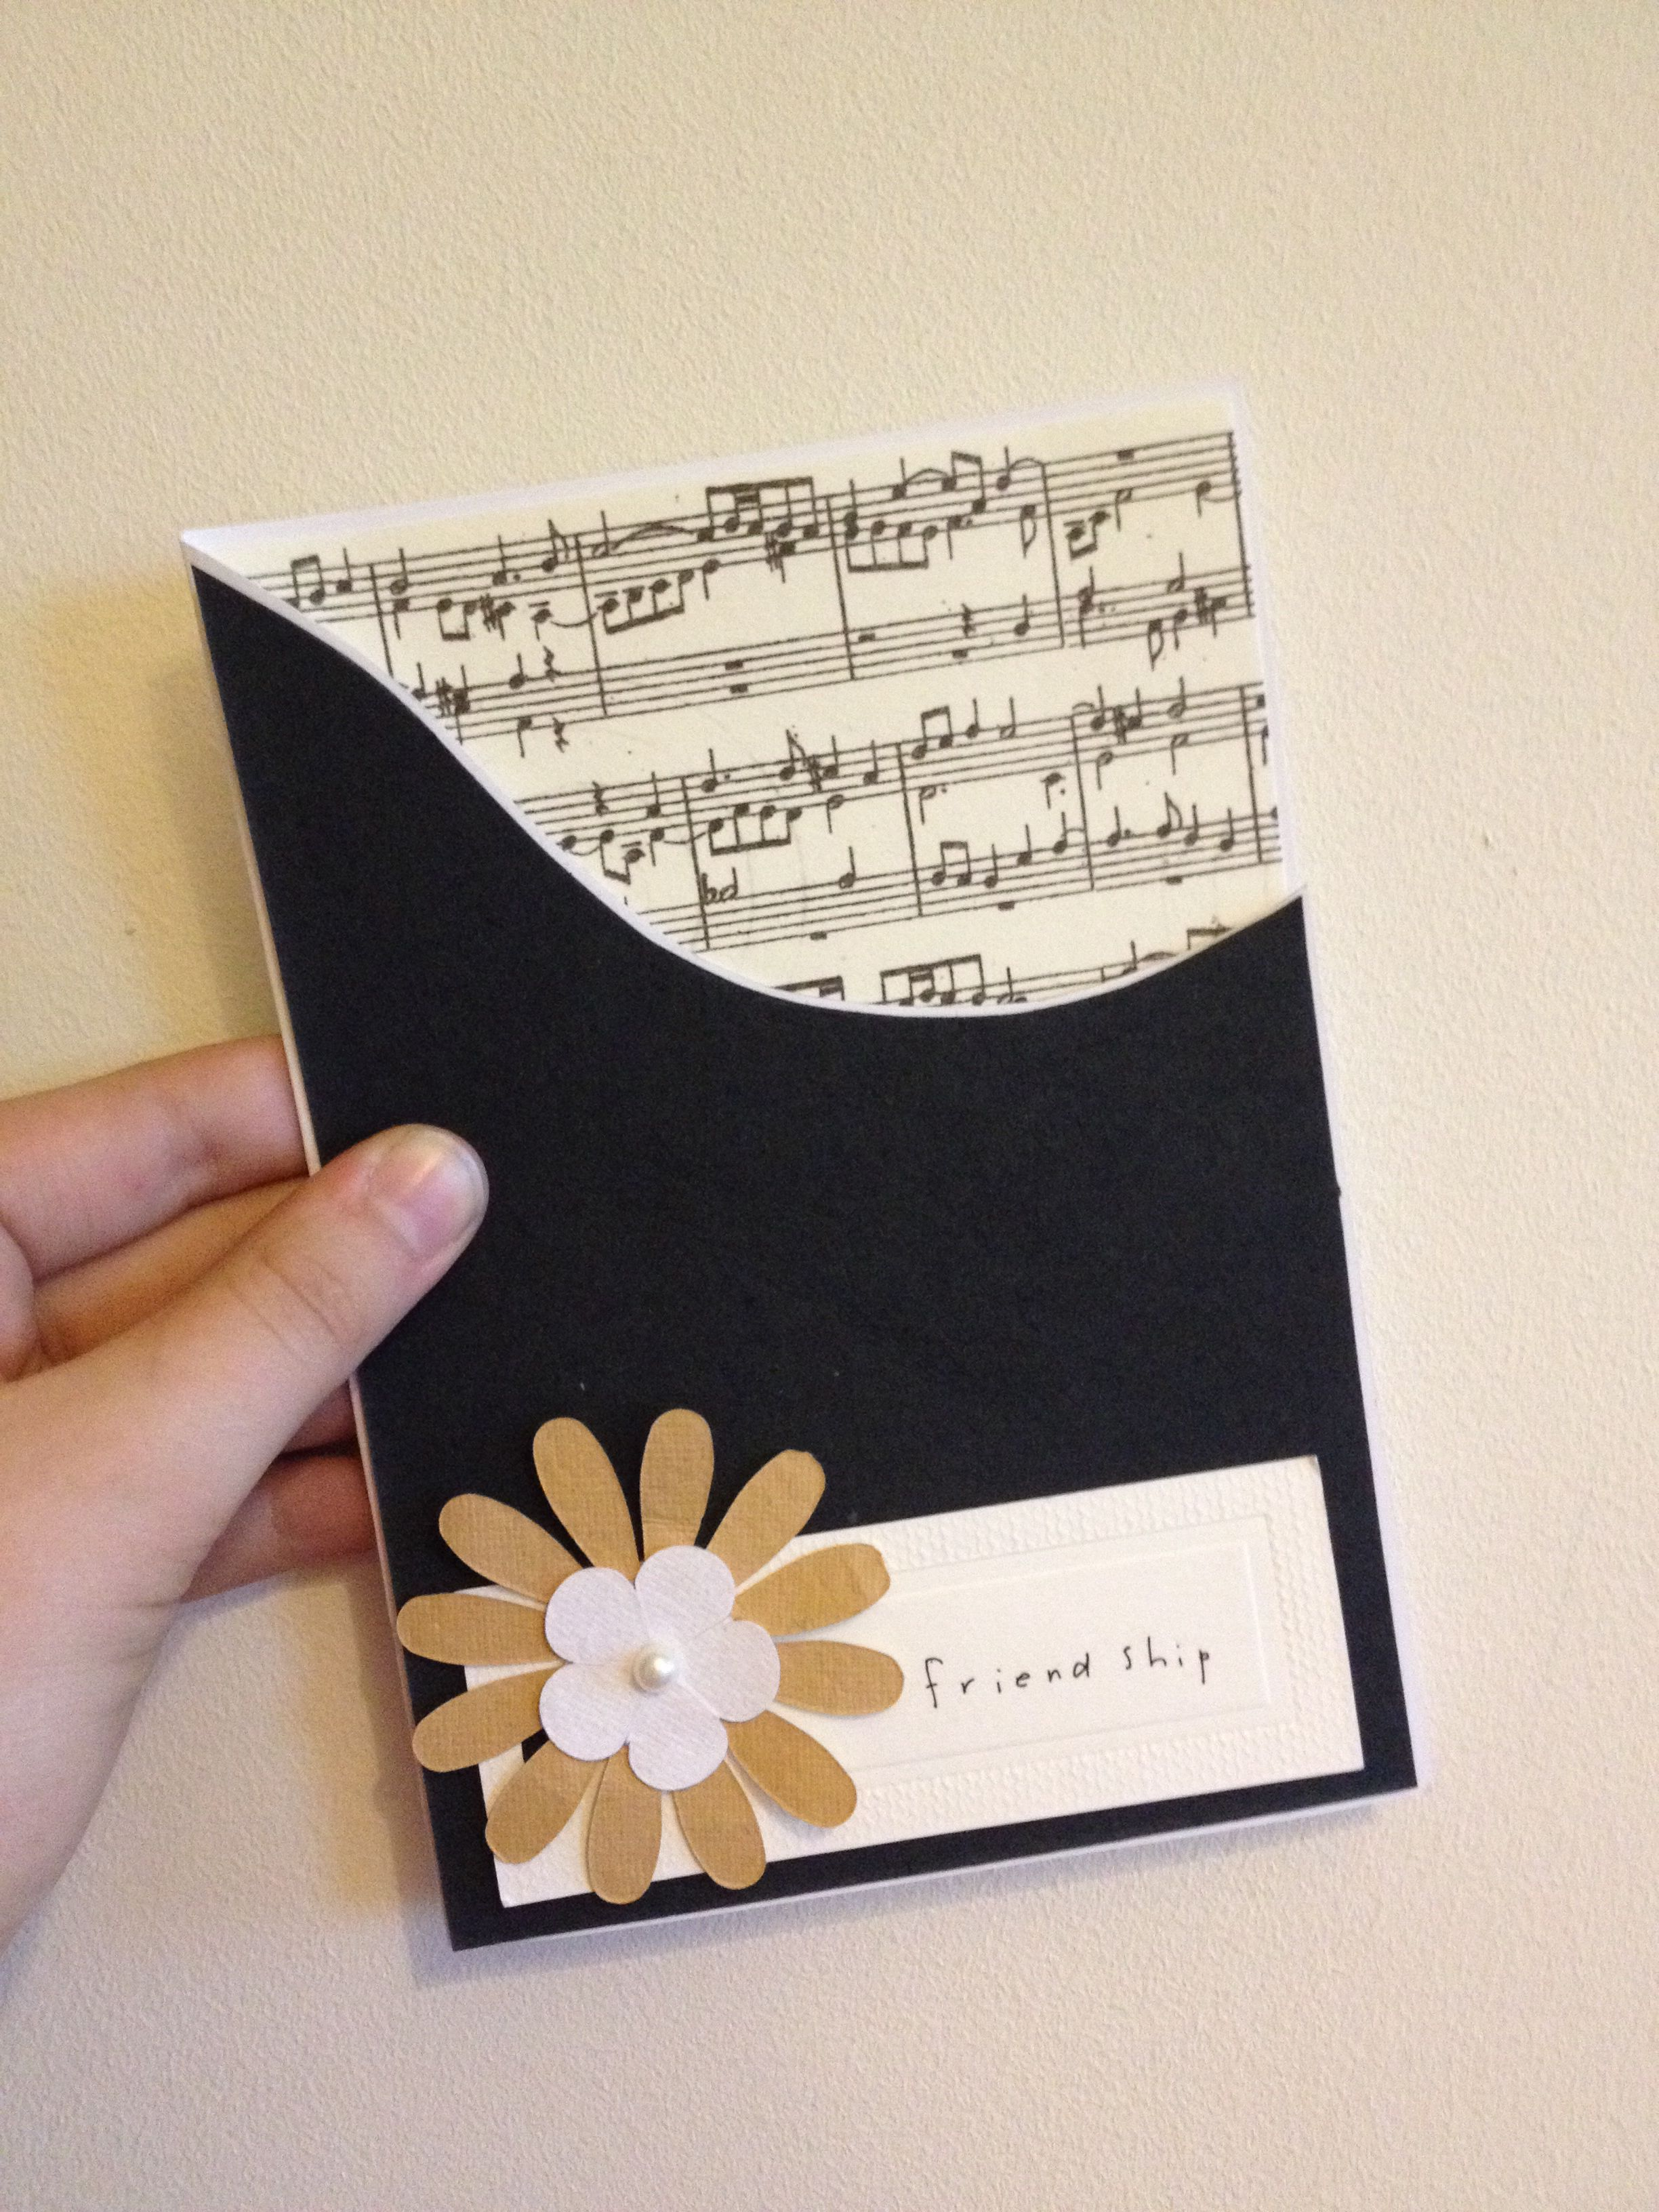 Diy Friendship Card Musical Card Birthday Card Simple Cards